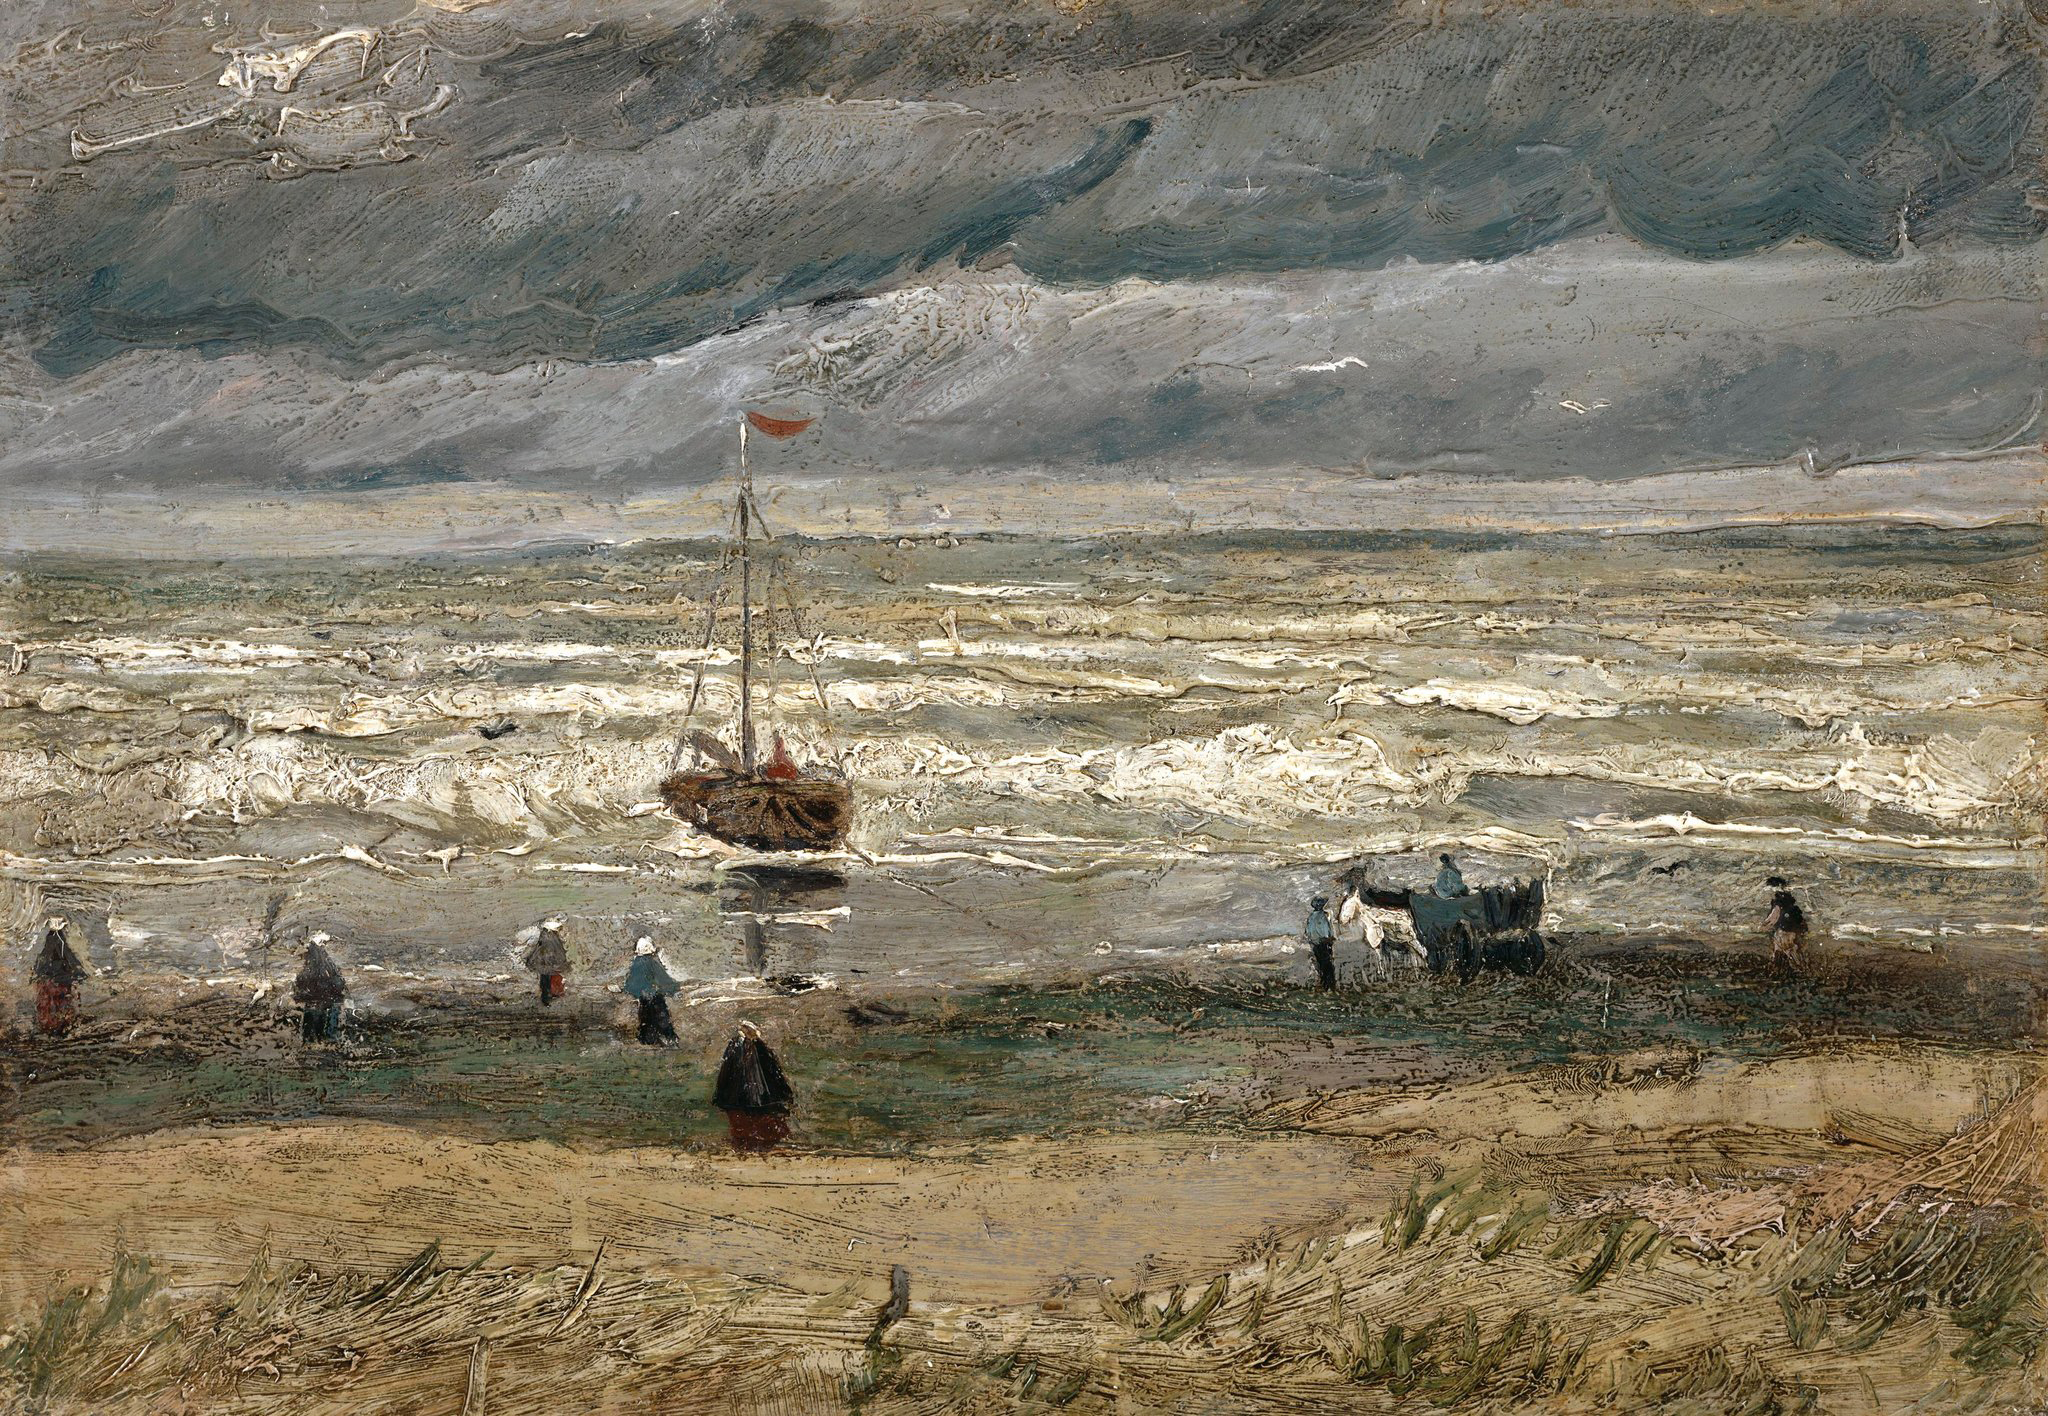 Two Stolen Van Gogh Paintings Recovered in Italy